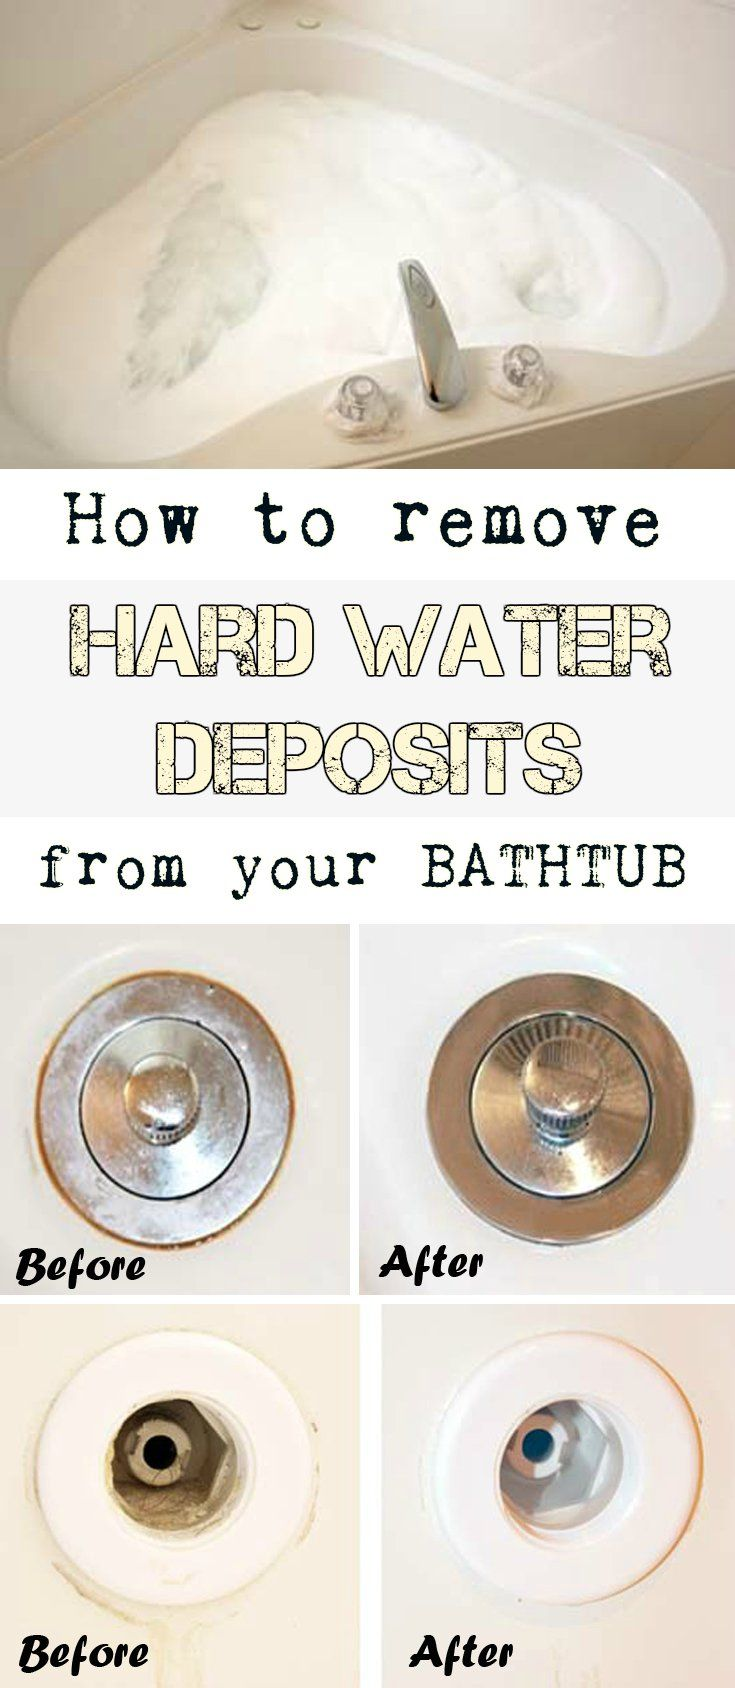 How to remove hard water deposits from your bathtub ...